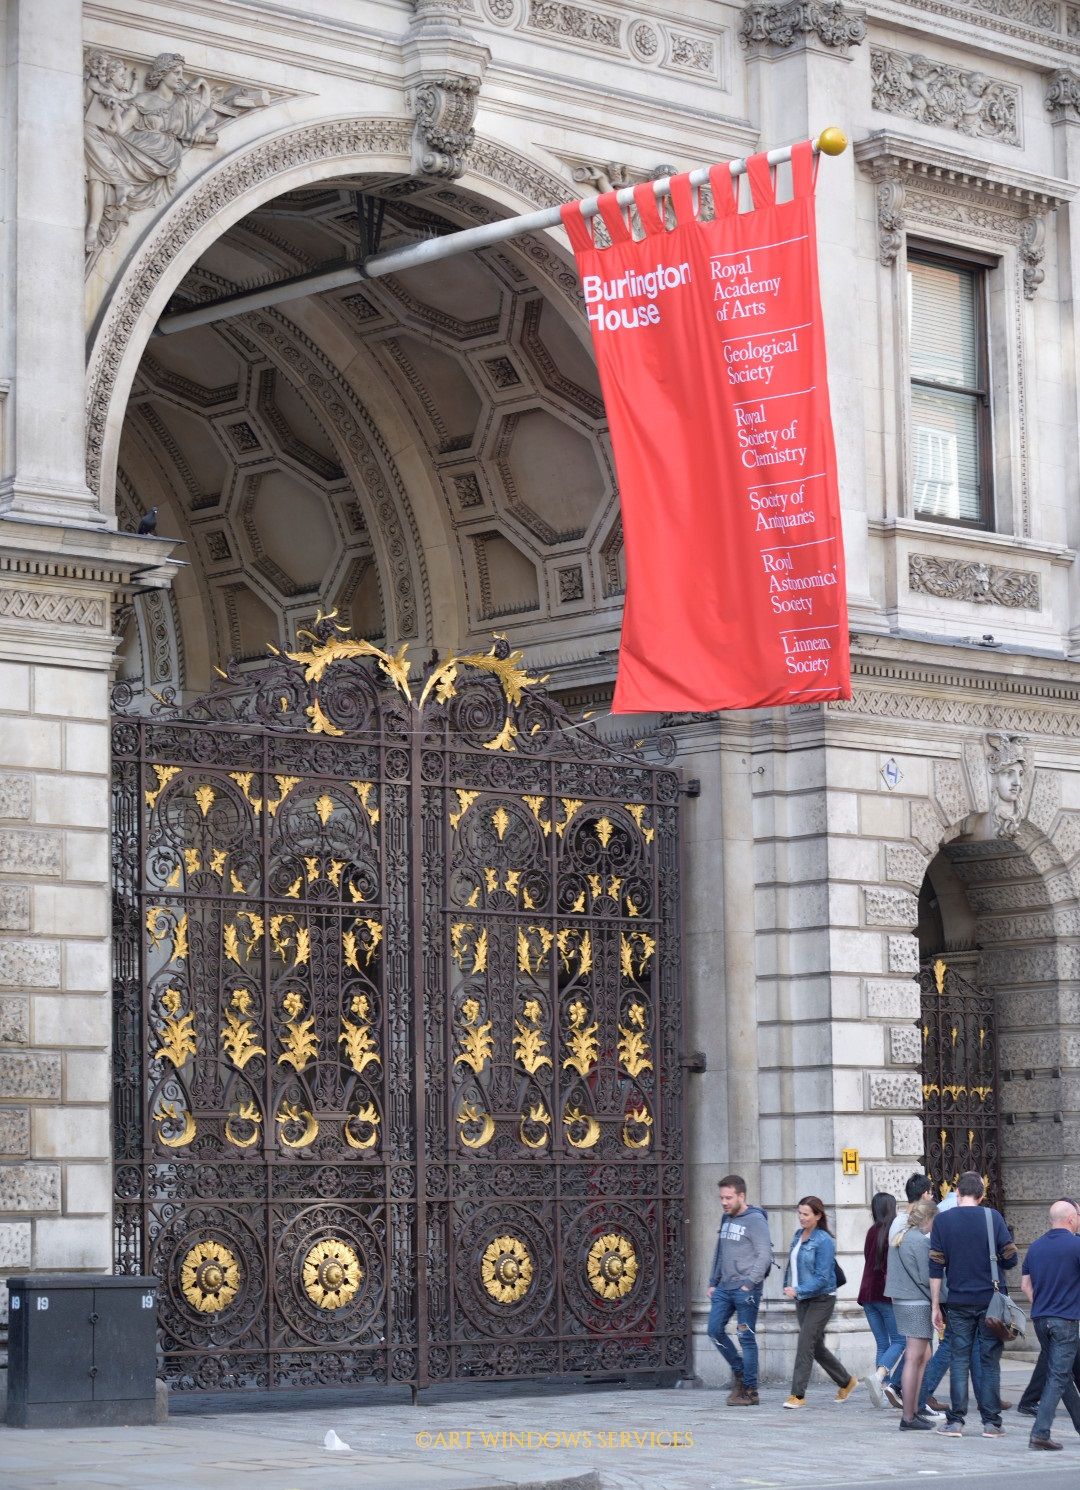 The Burlington House Gate. The entrance to the Royal Academy of Arts